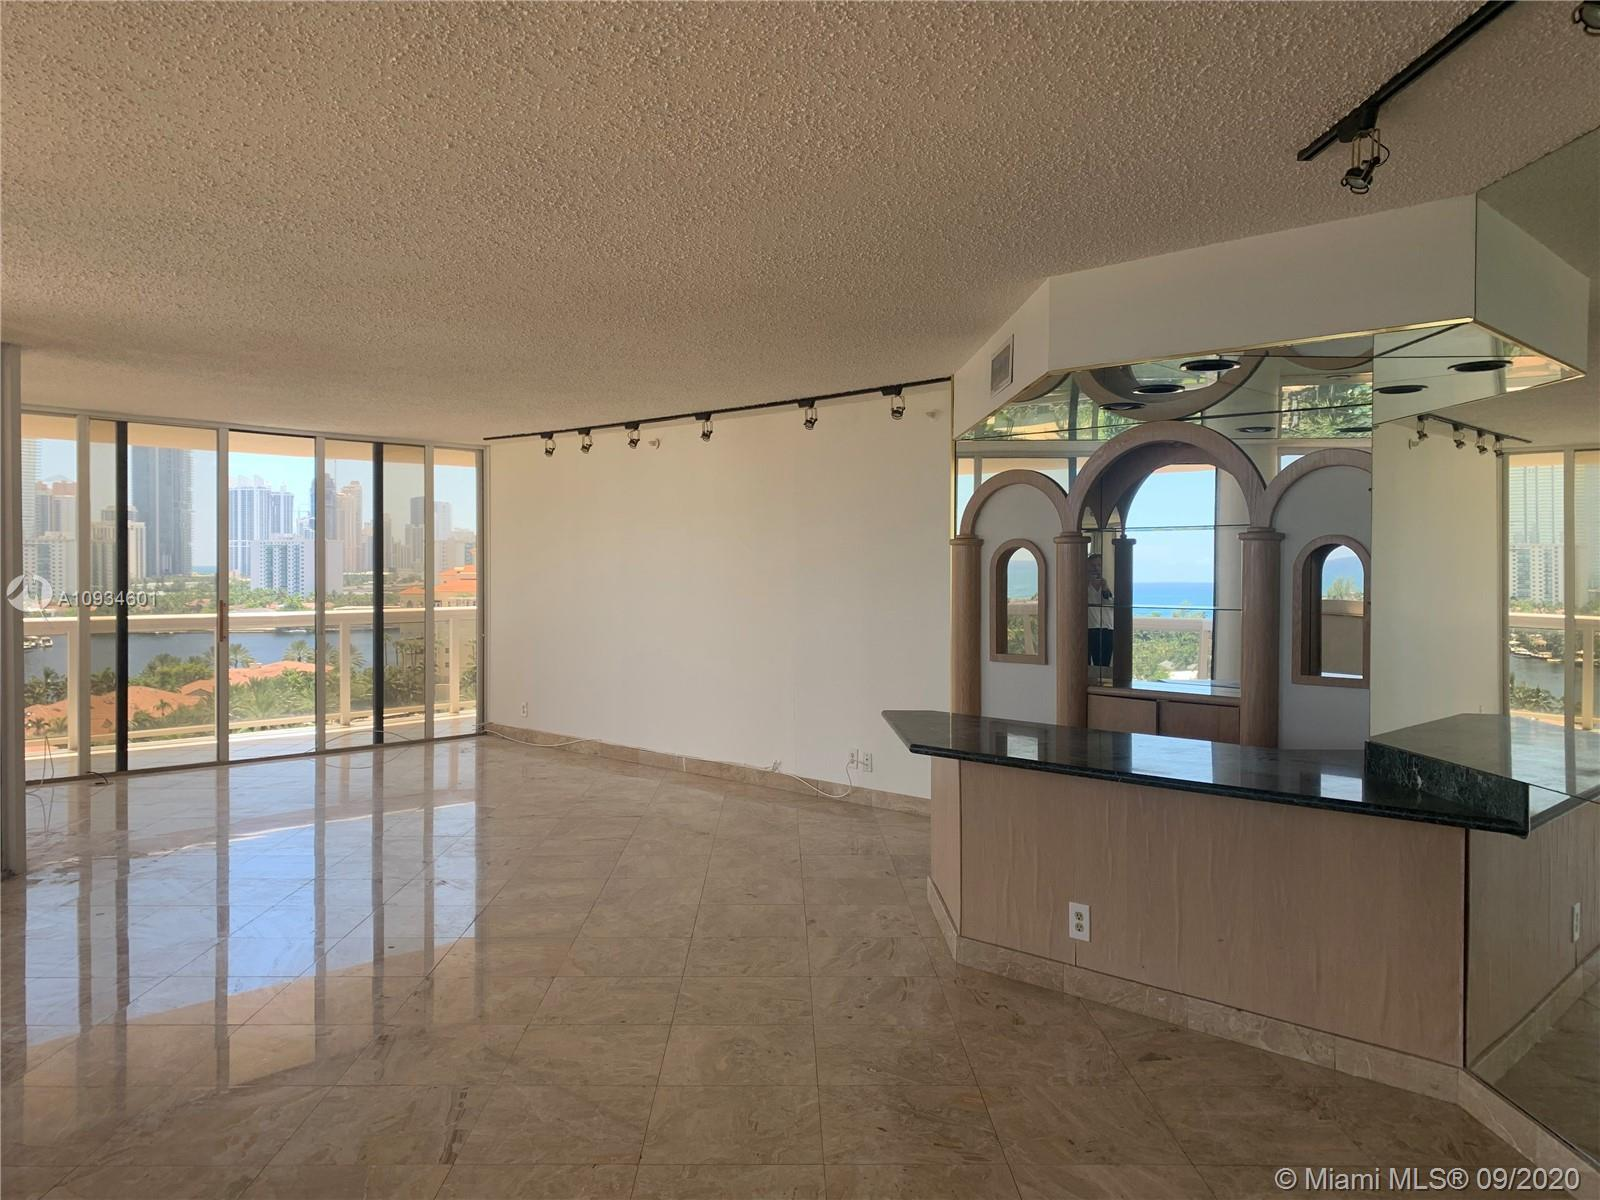 Enjoy this Breathtaking oceanfront luxury condo with spectacular views of the waterways. The 2 wrapa